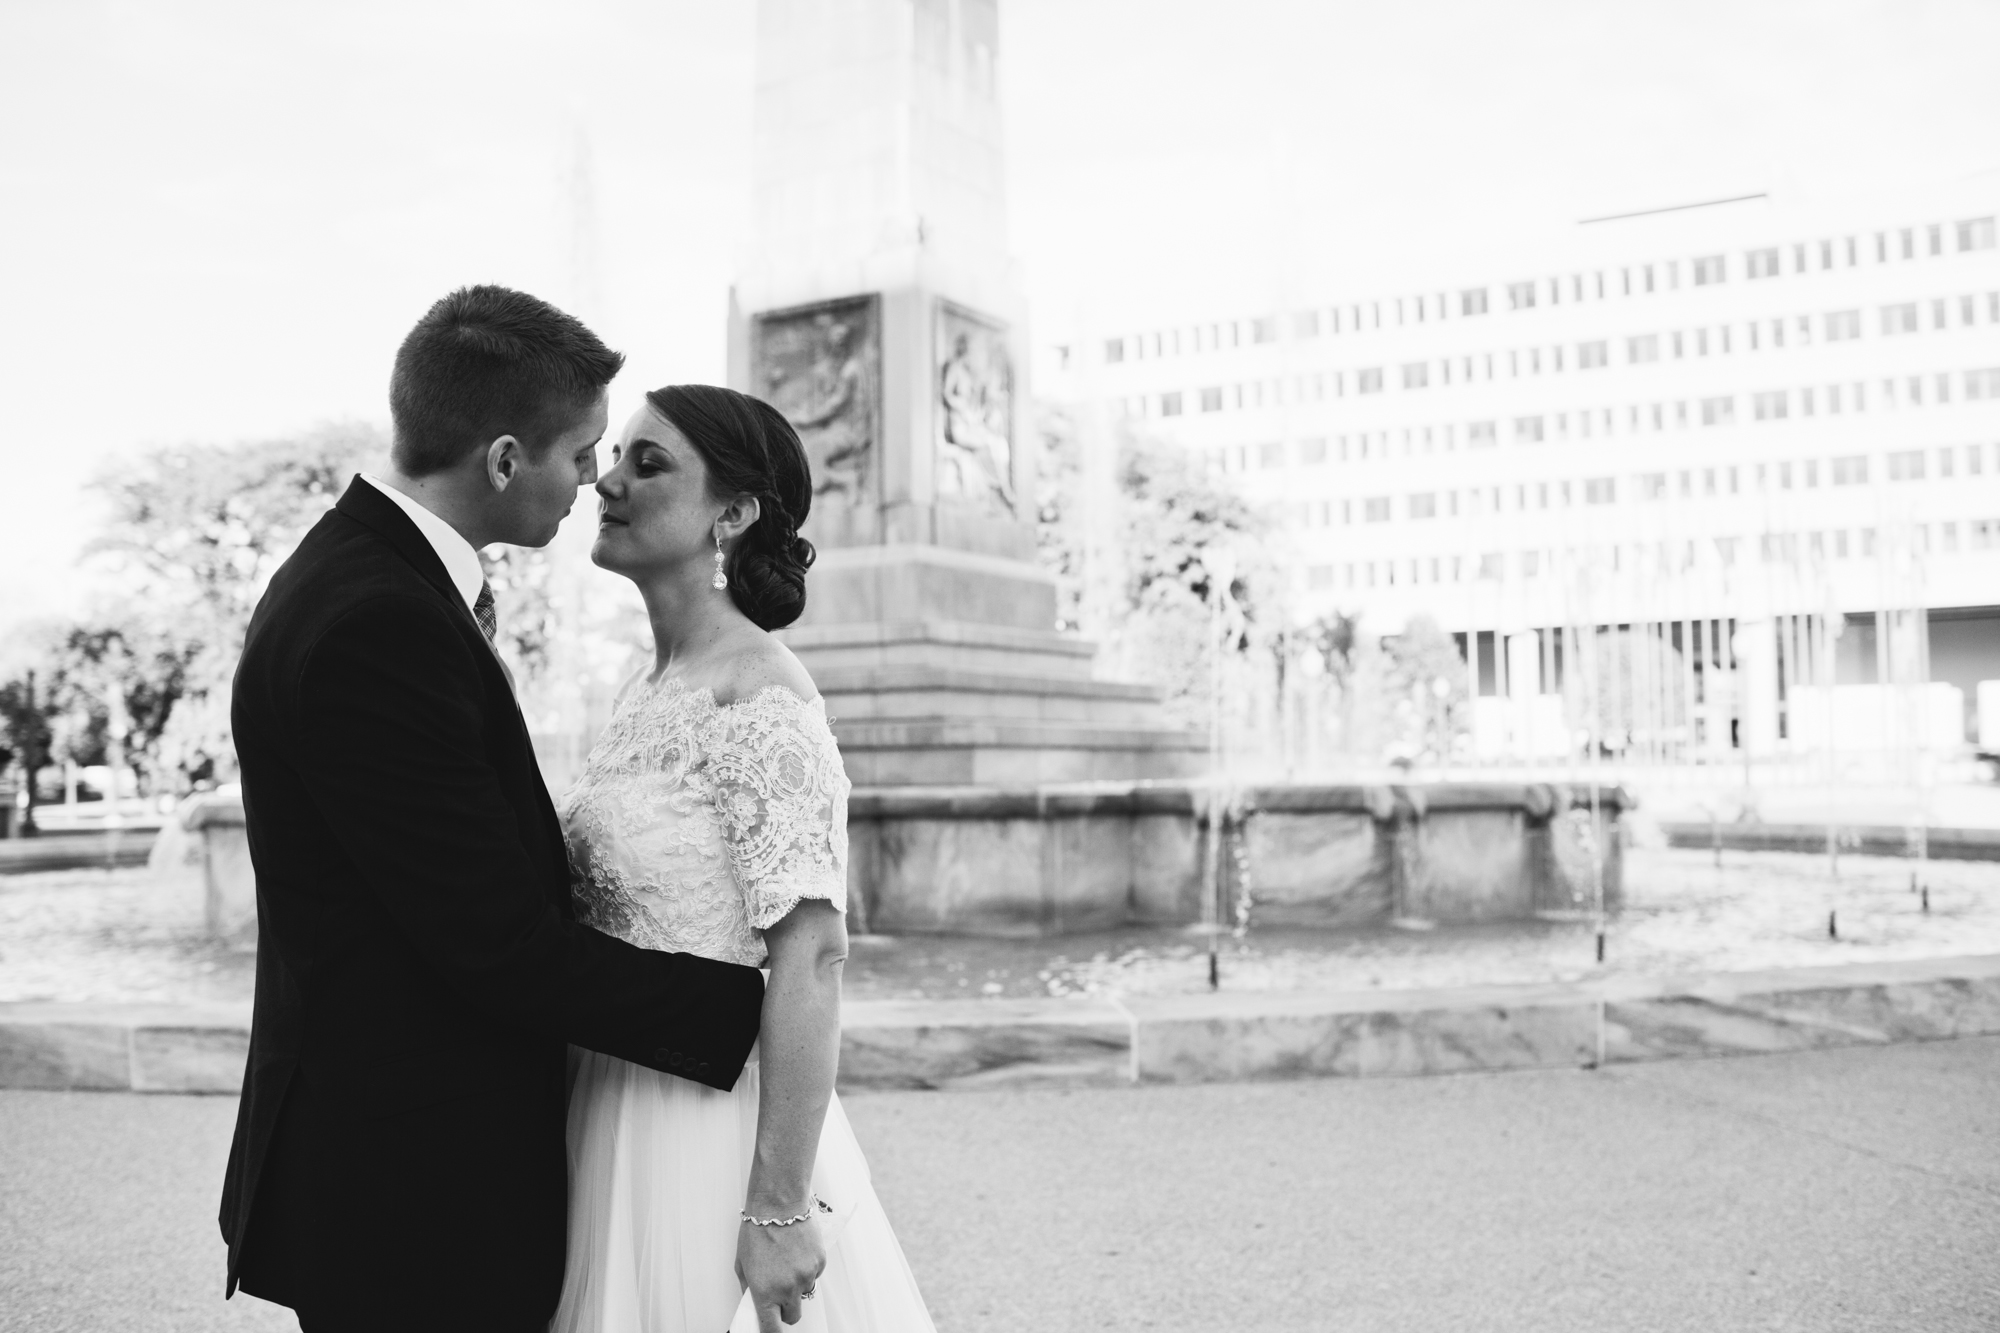 Davey & Kaylee Wed (613 of 983).jpg